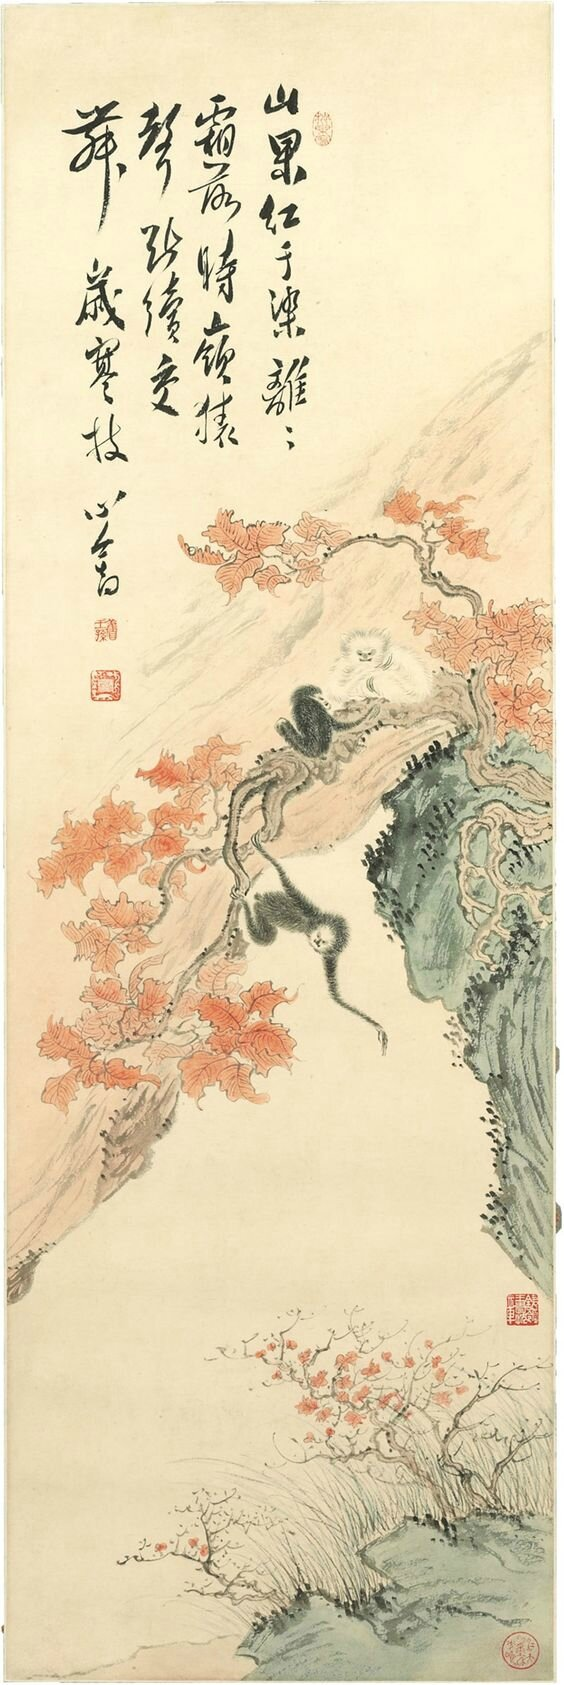 filial pietys role in ancient china After china was unified by the qin dynasty (221-206 bc) and an autocratic imperial state was created, filial piety began to be incorporated into the new state ideology (ibid, p 144) the classic of filial piety states.